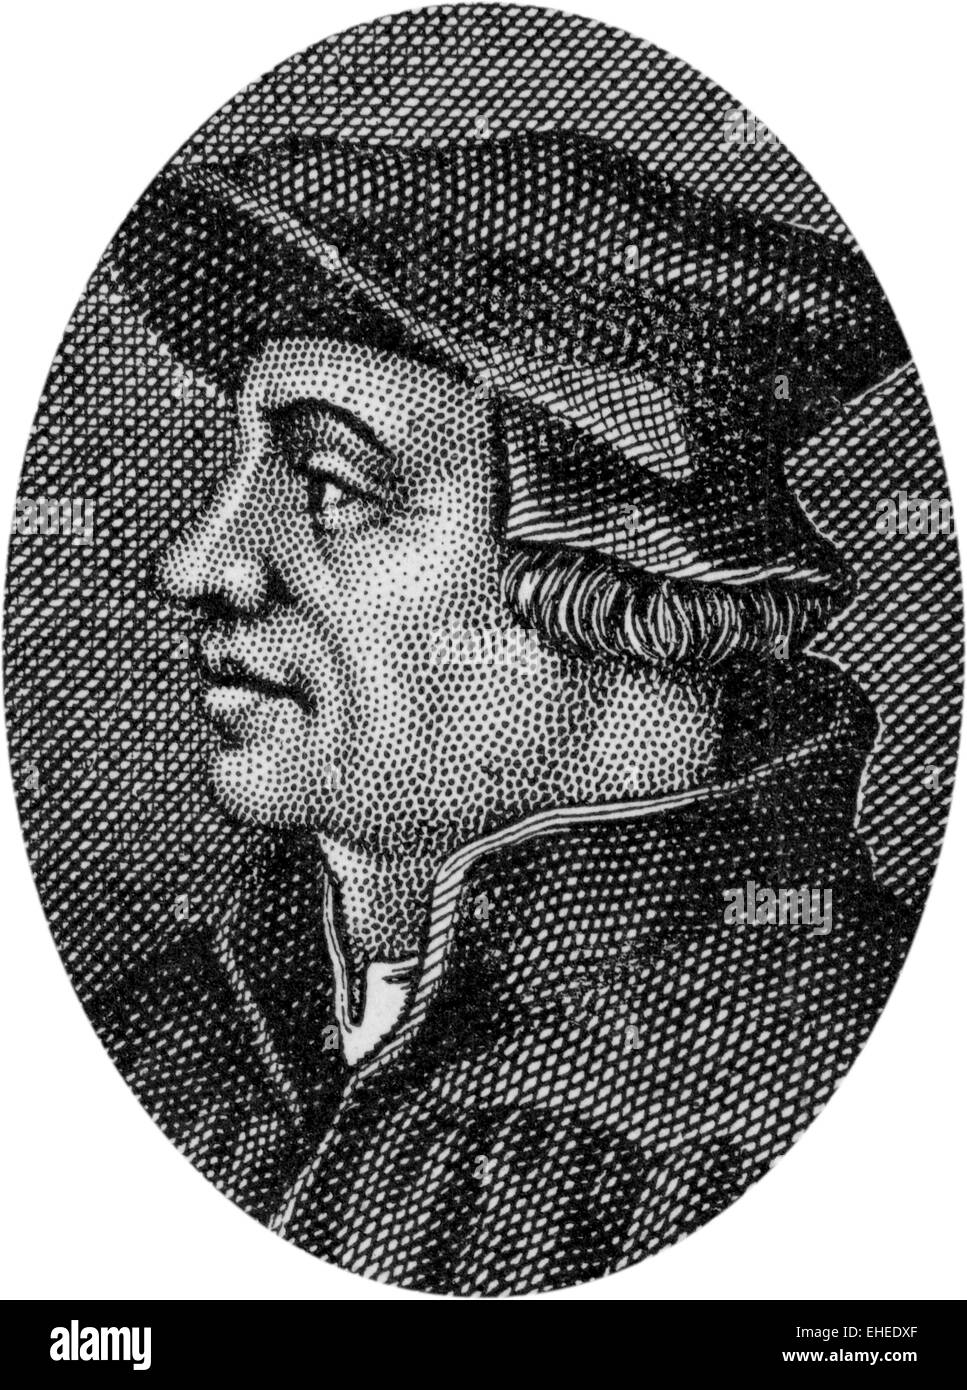 Engraving of Ulrich Zwingli, Swiss Reformer, 1484 - 1531 - Stock Image